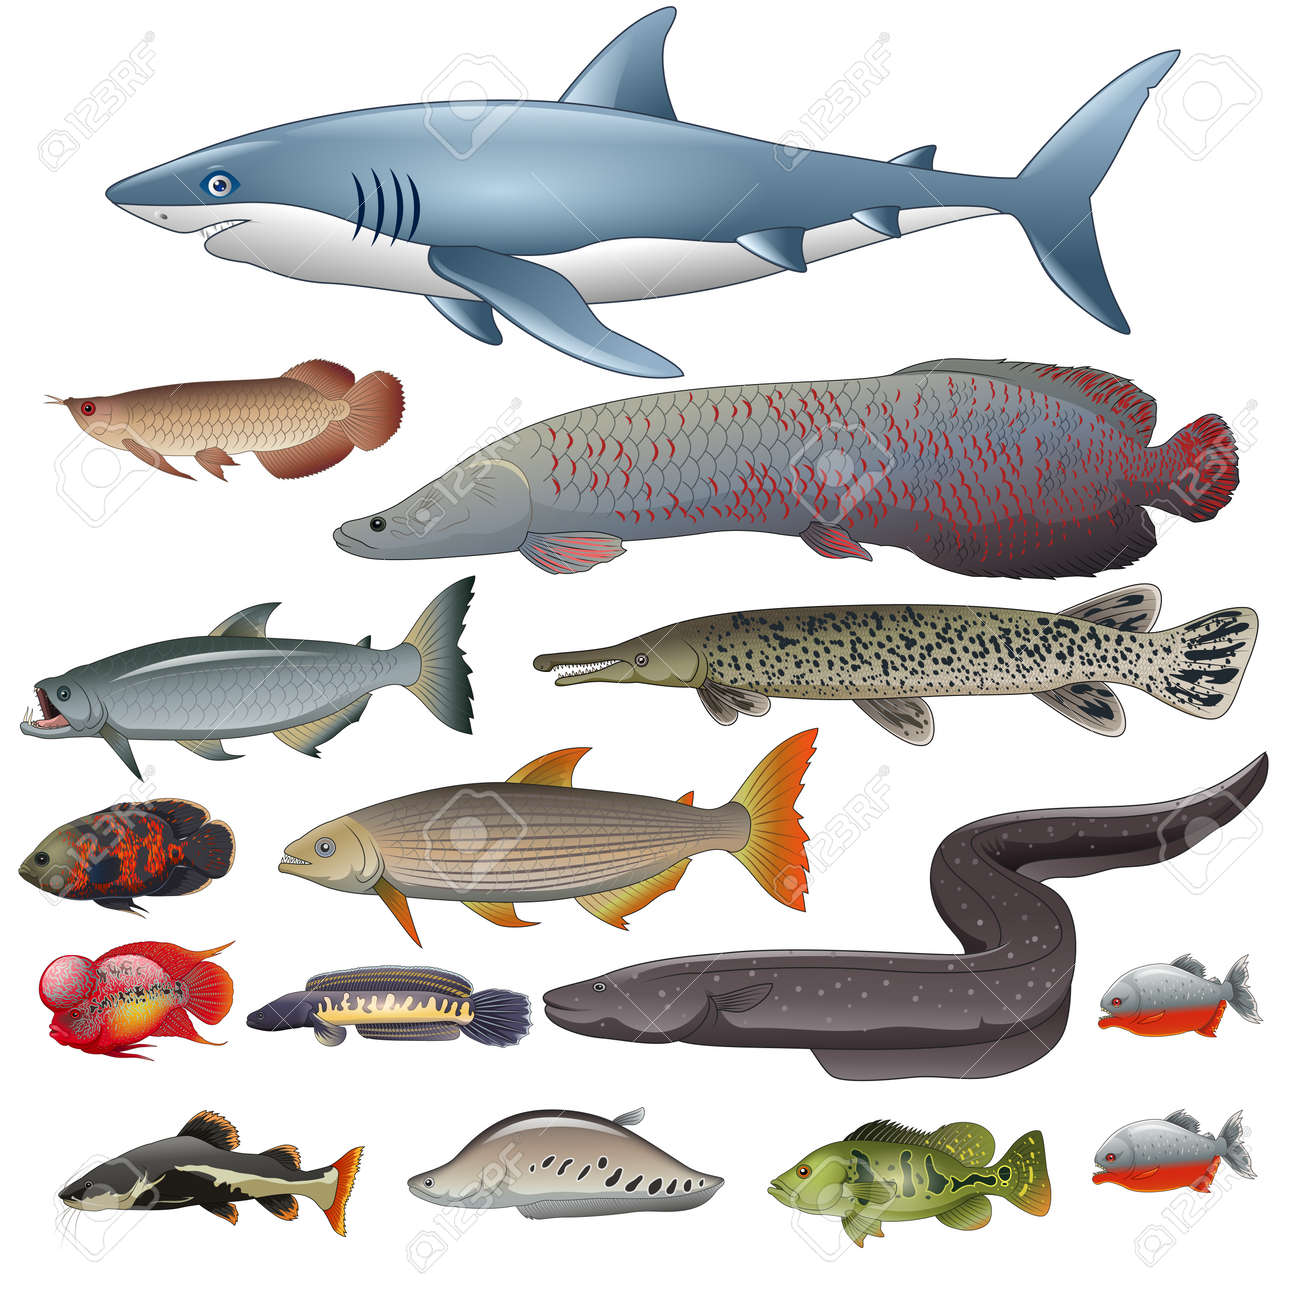 Freshwater Fish Set Illustration Of Different Types Of Fish Royalty Free Cliparts Vectors And Stock Illustration Image 138107547